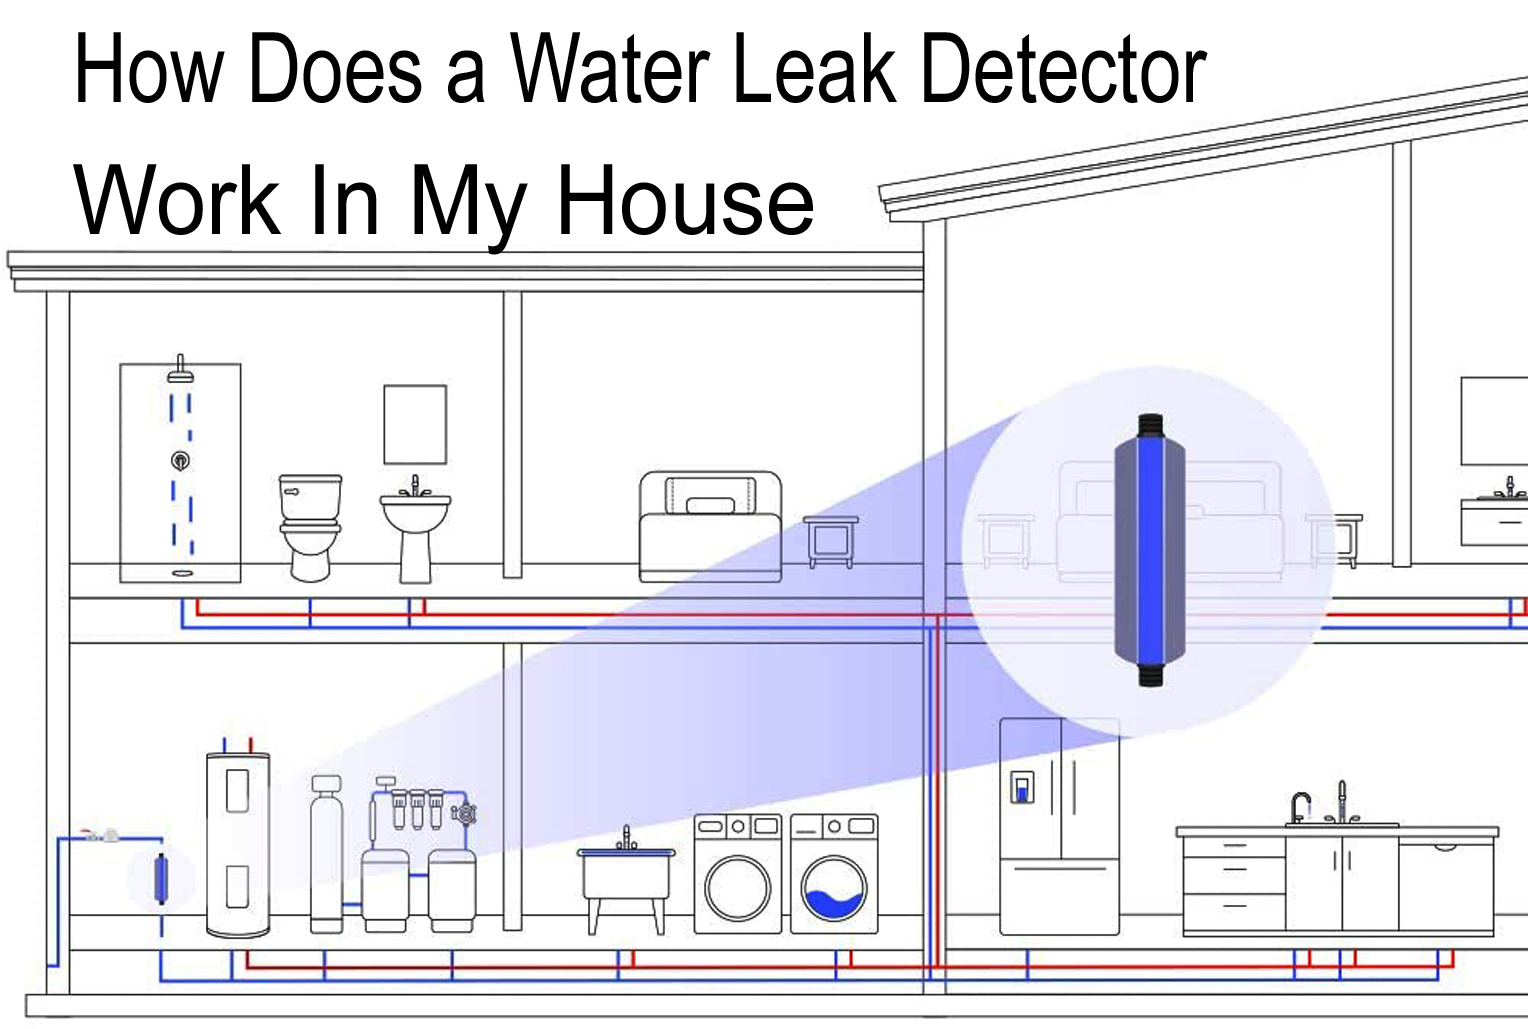 How Does a Water Leak Detector Work